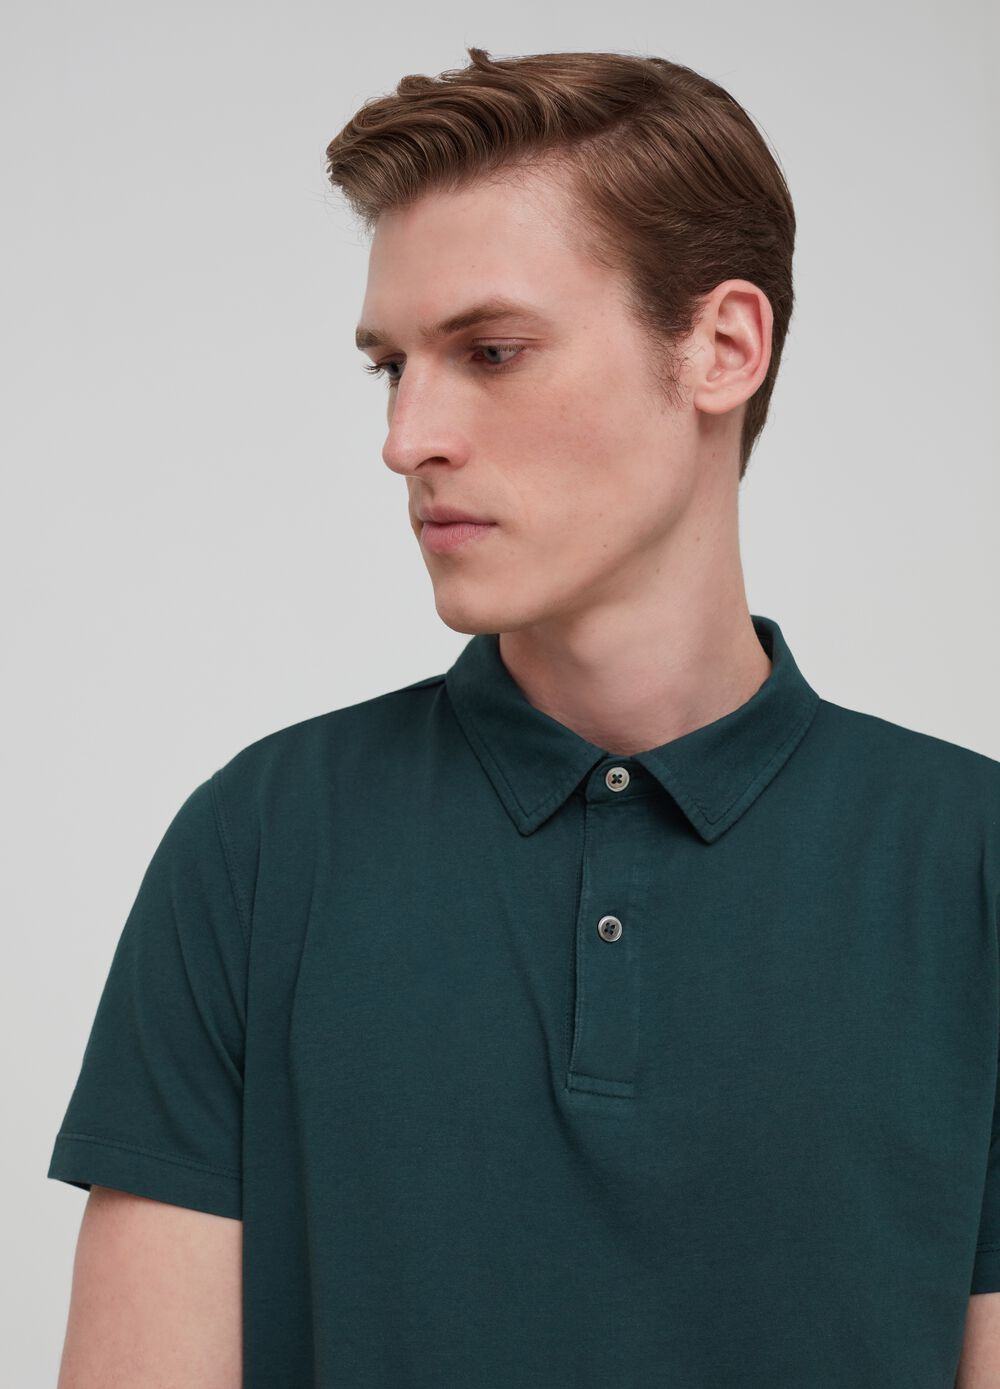 Premium polo shirt in garment-dyed 100% cotton